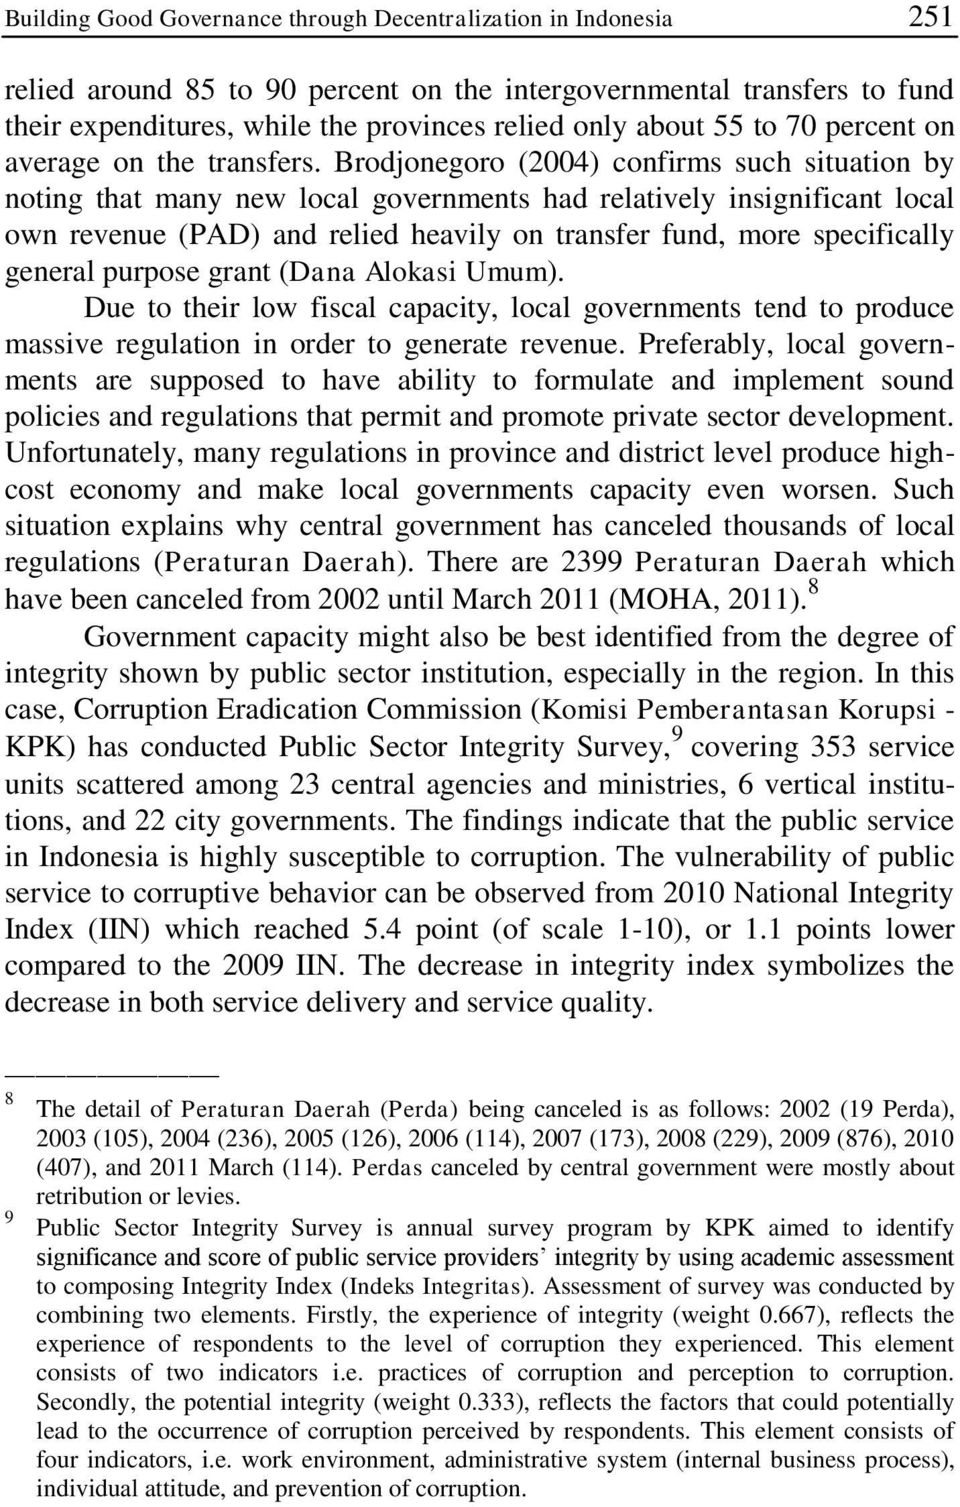 Brodjonegoro (2004) confirms such situation by noting that many new local governments had relatively insignificant local own revenue (PAD) and relied heavily on transfer fund, more specifically